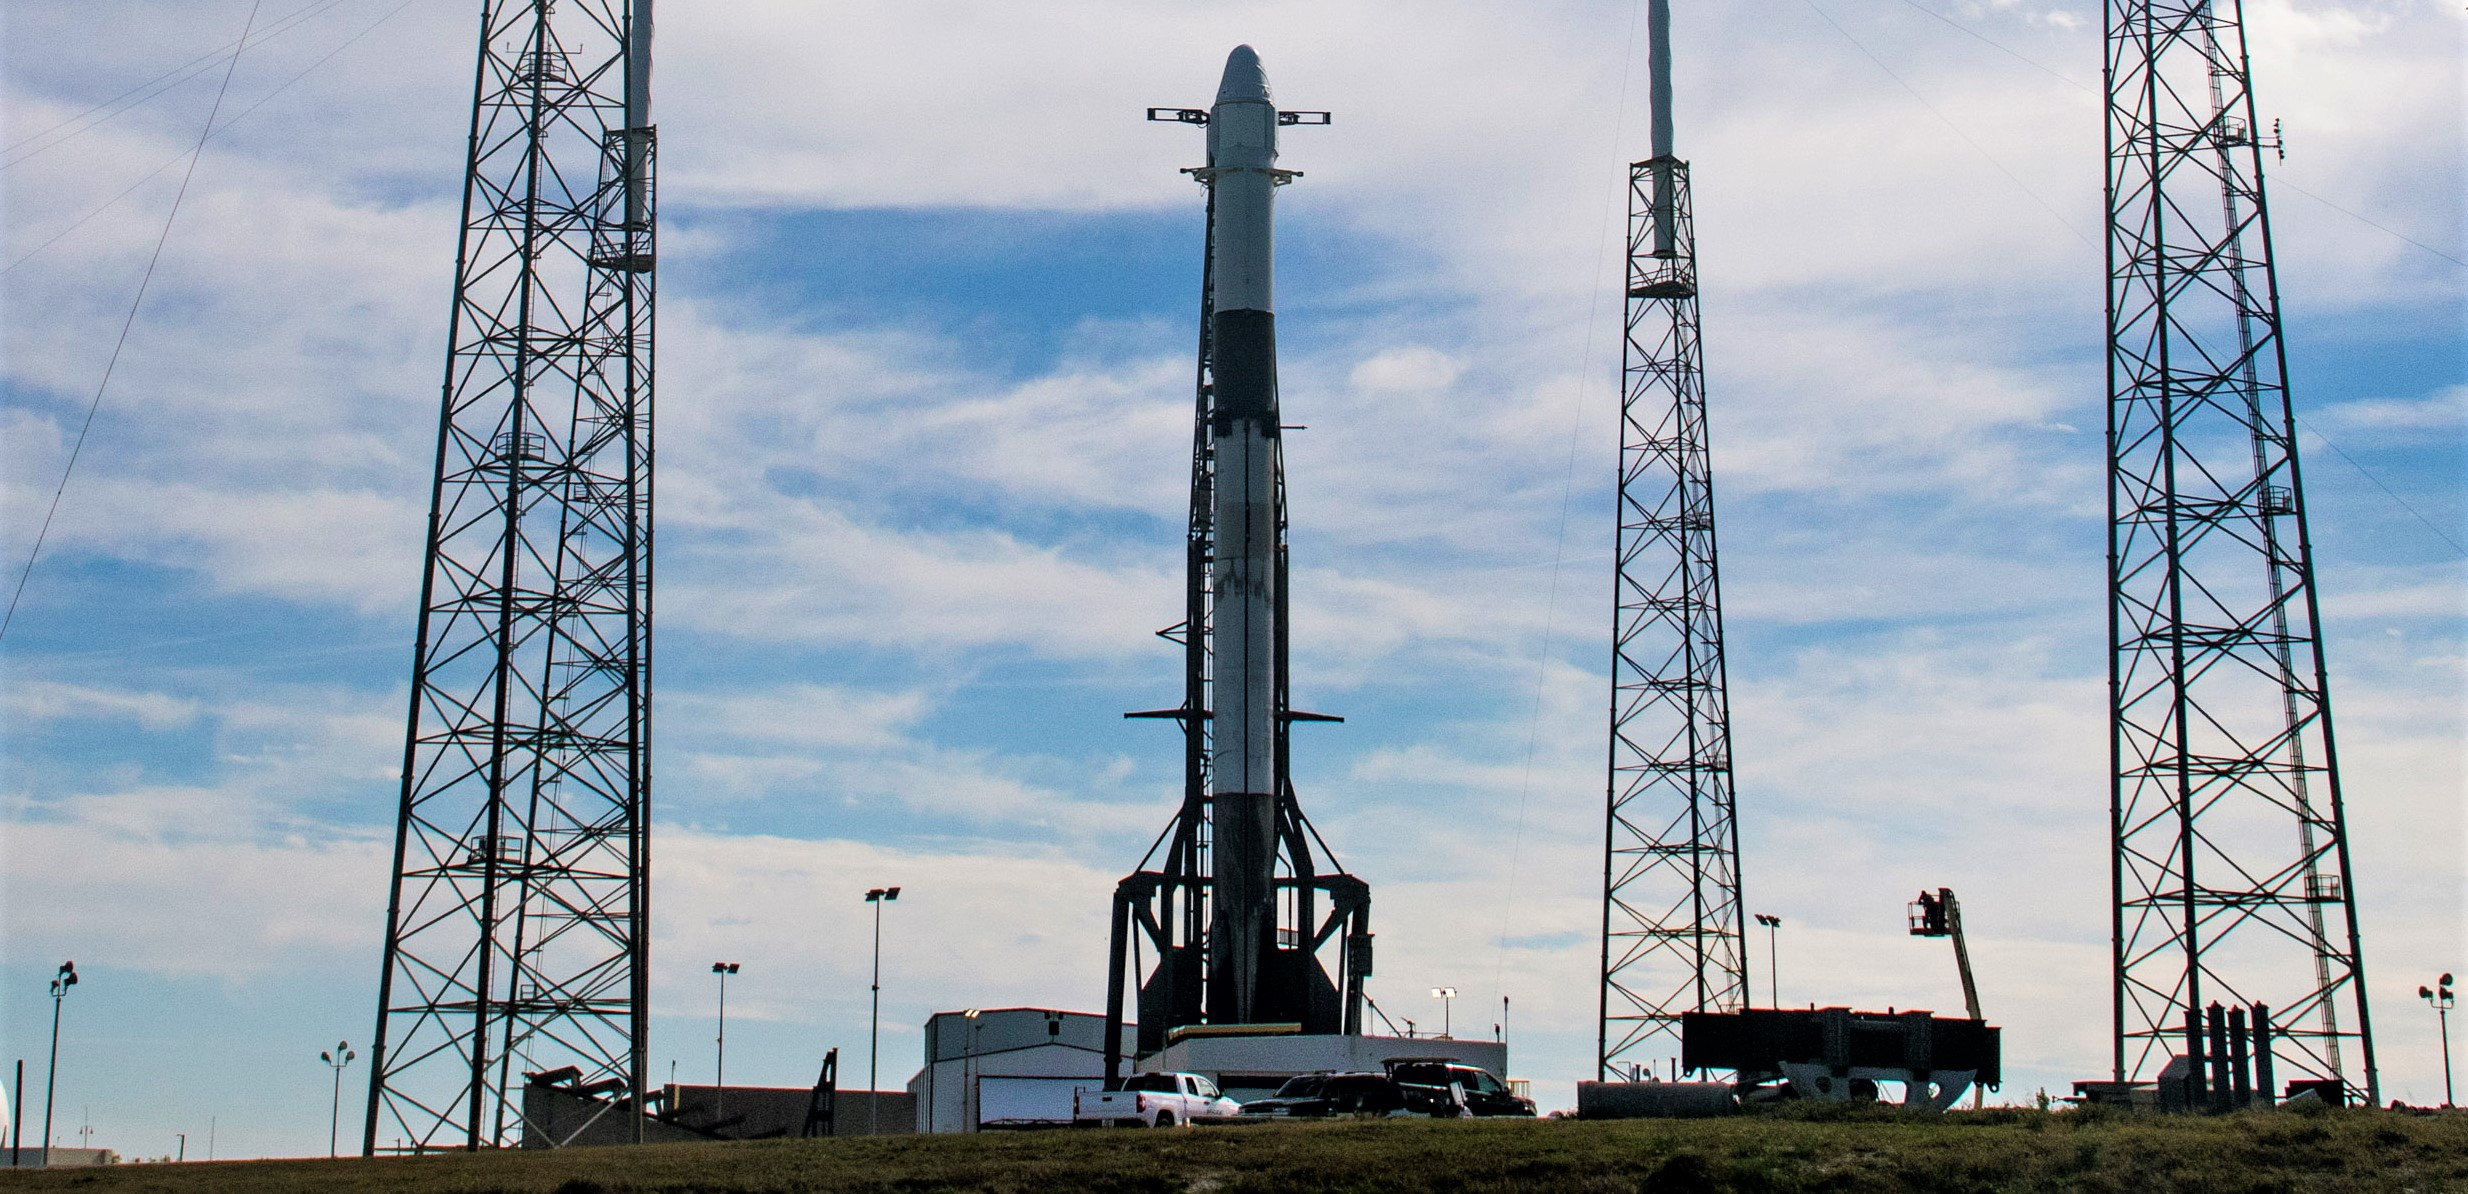 CRS-20 Cargo Dragon C112 Falcon 9 B1059 LC40 vertical 030620 (SpaceX) 1 crop